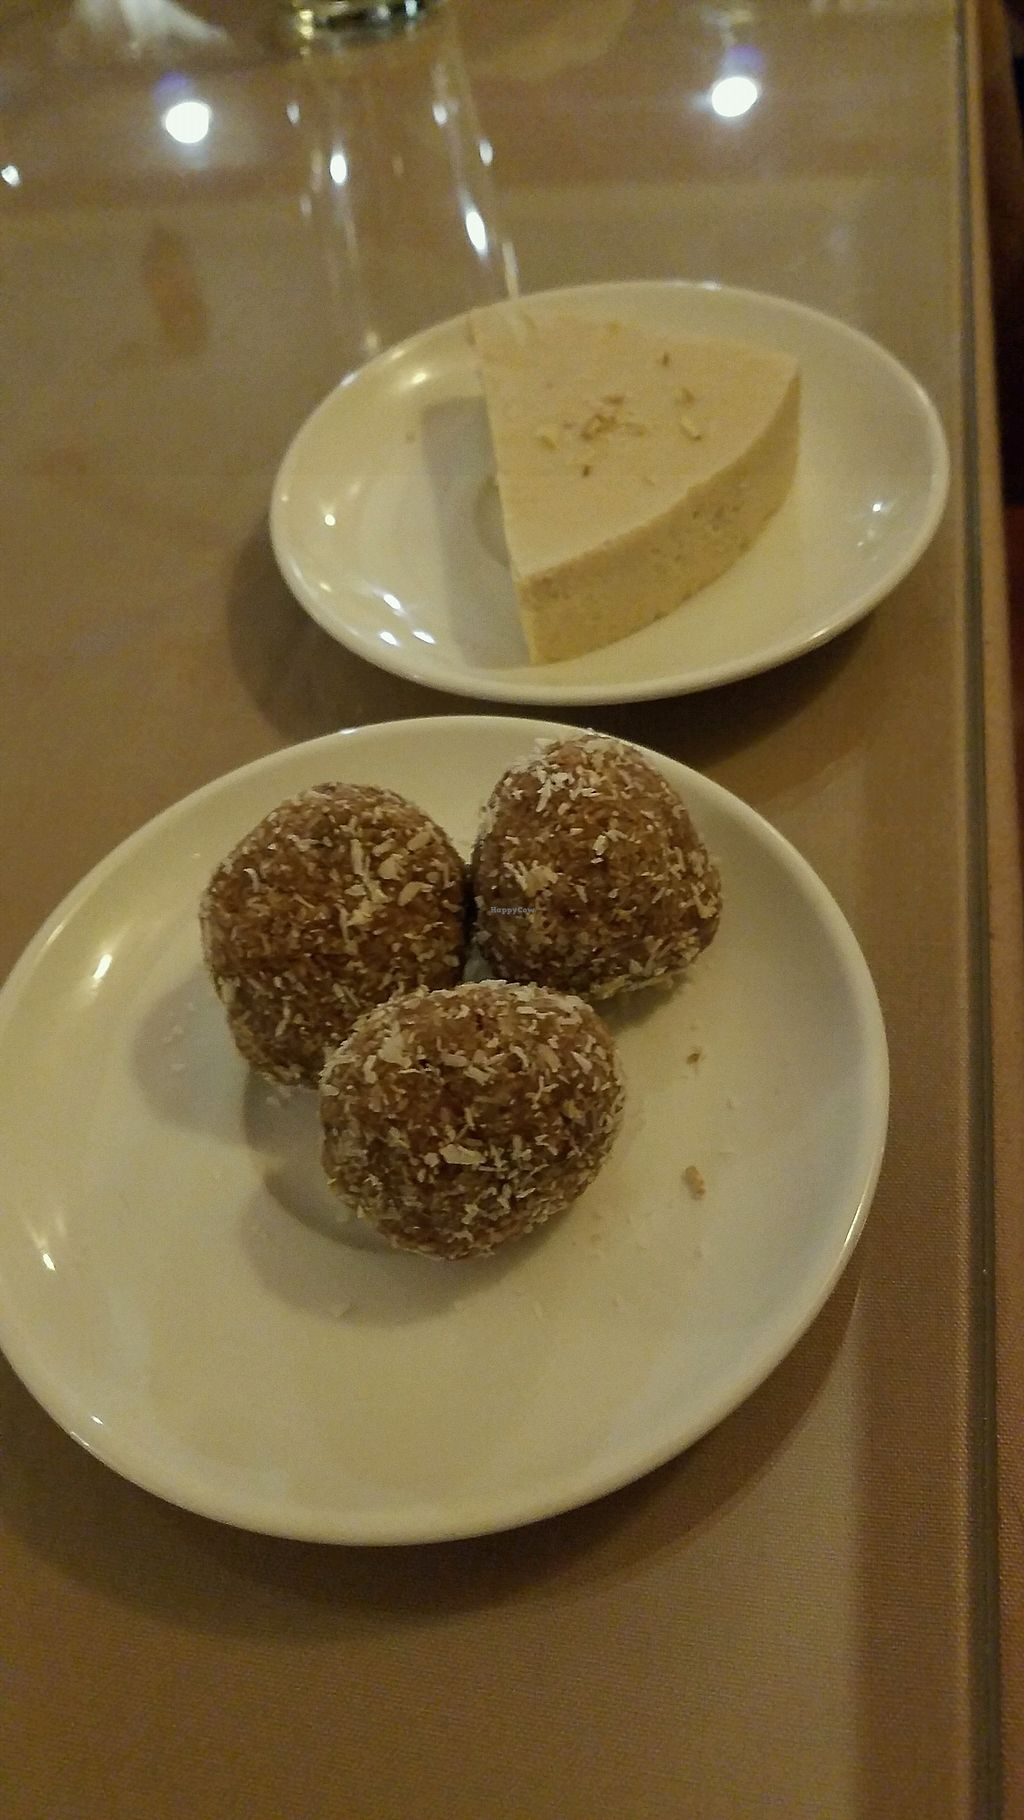 """Photo of Arya Bhavan  by <a href=""""/members/profile/gostofish"""">gostofish</a> <br/>choco coconut truffles and vegan cheesecake <br/> January 3, 2018  - <a href='/contact/abuse/image/1942/342628'>Report</a>"""